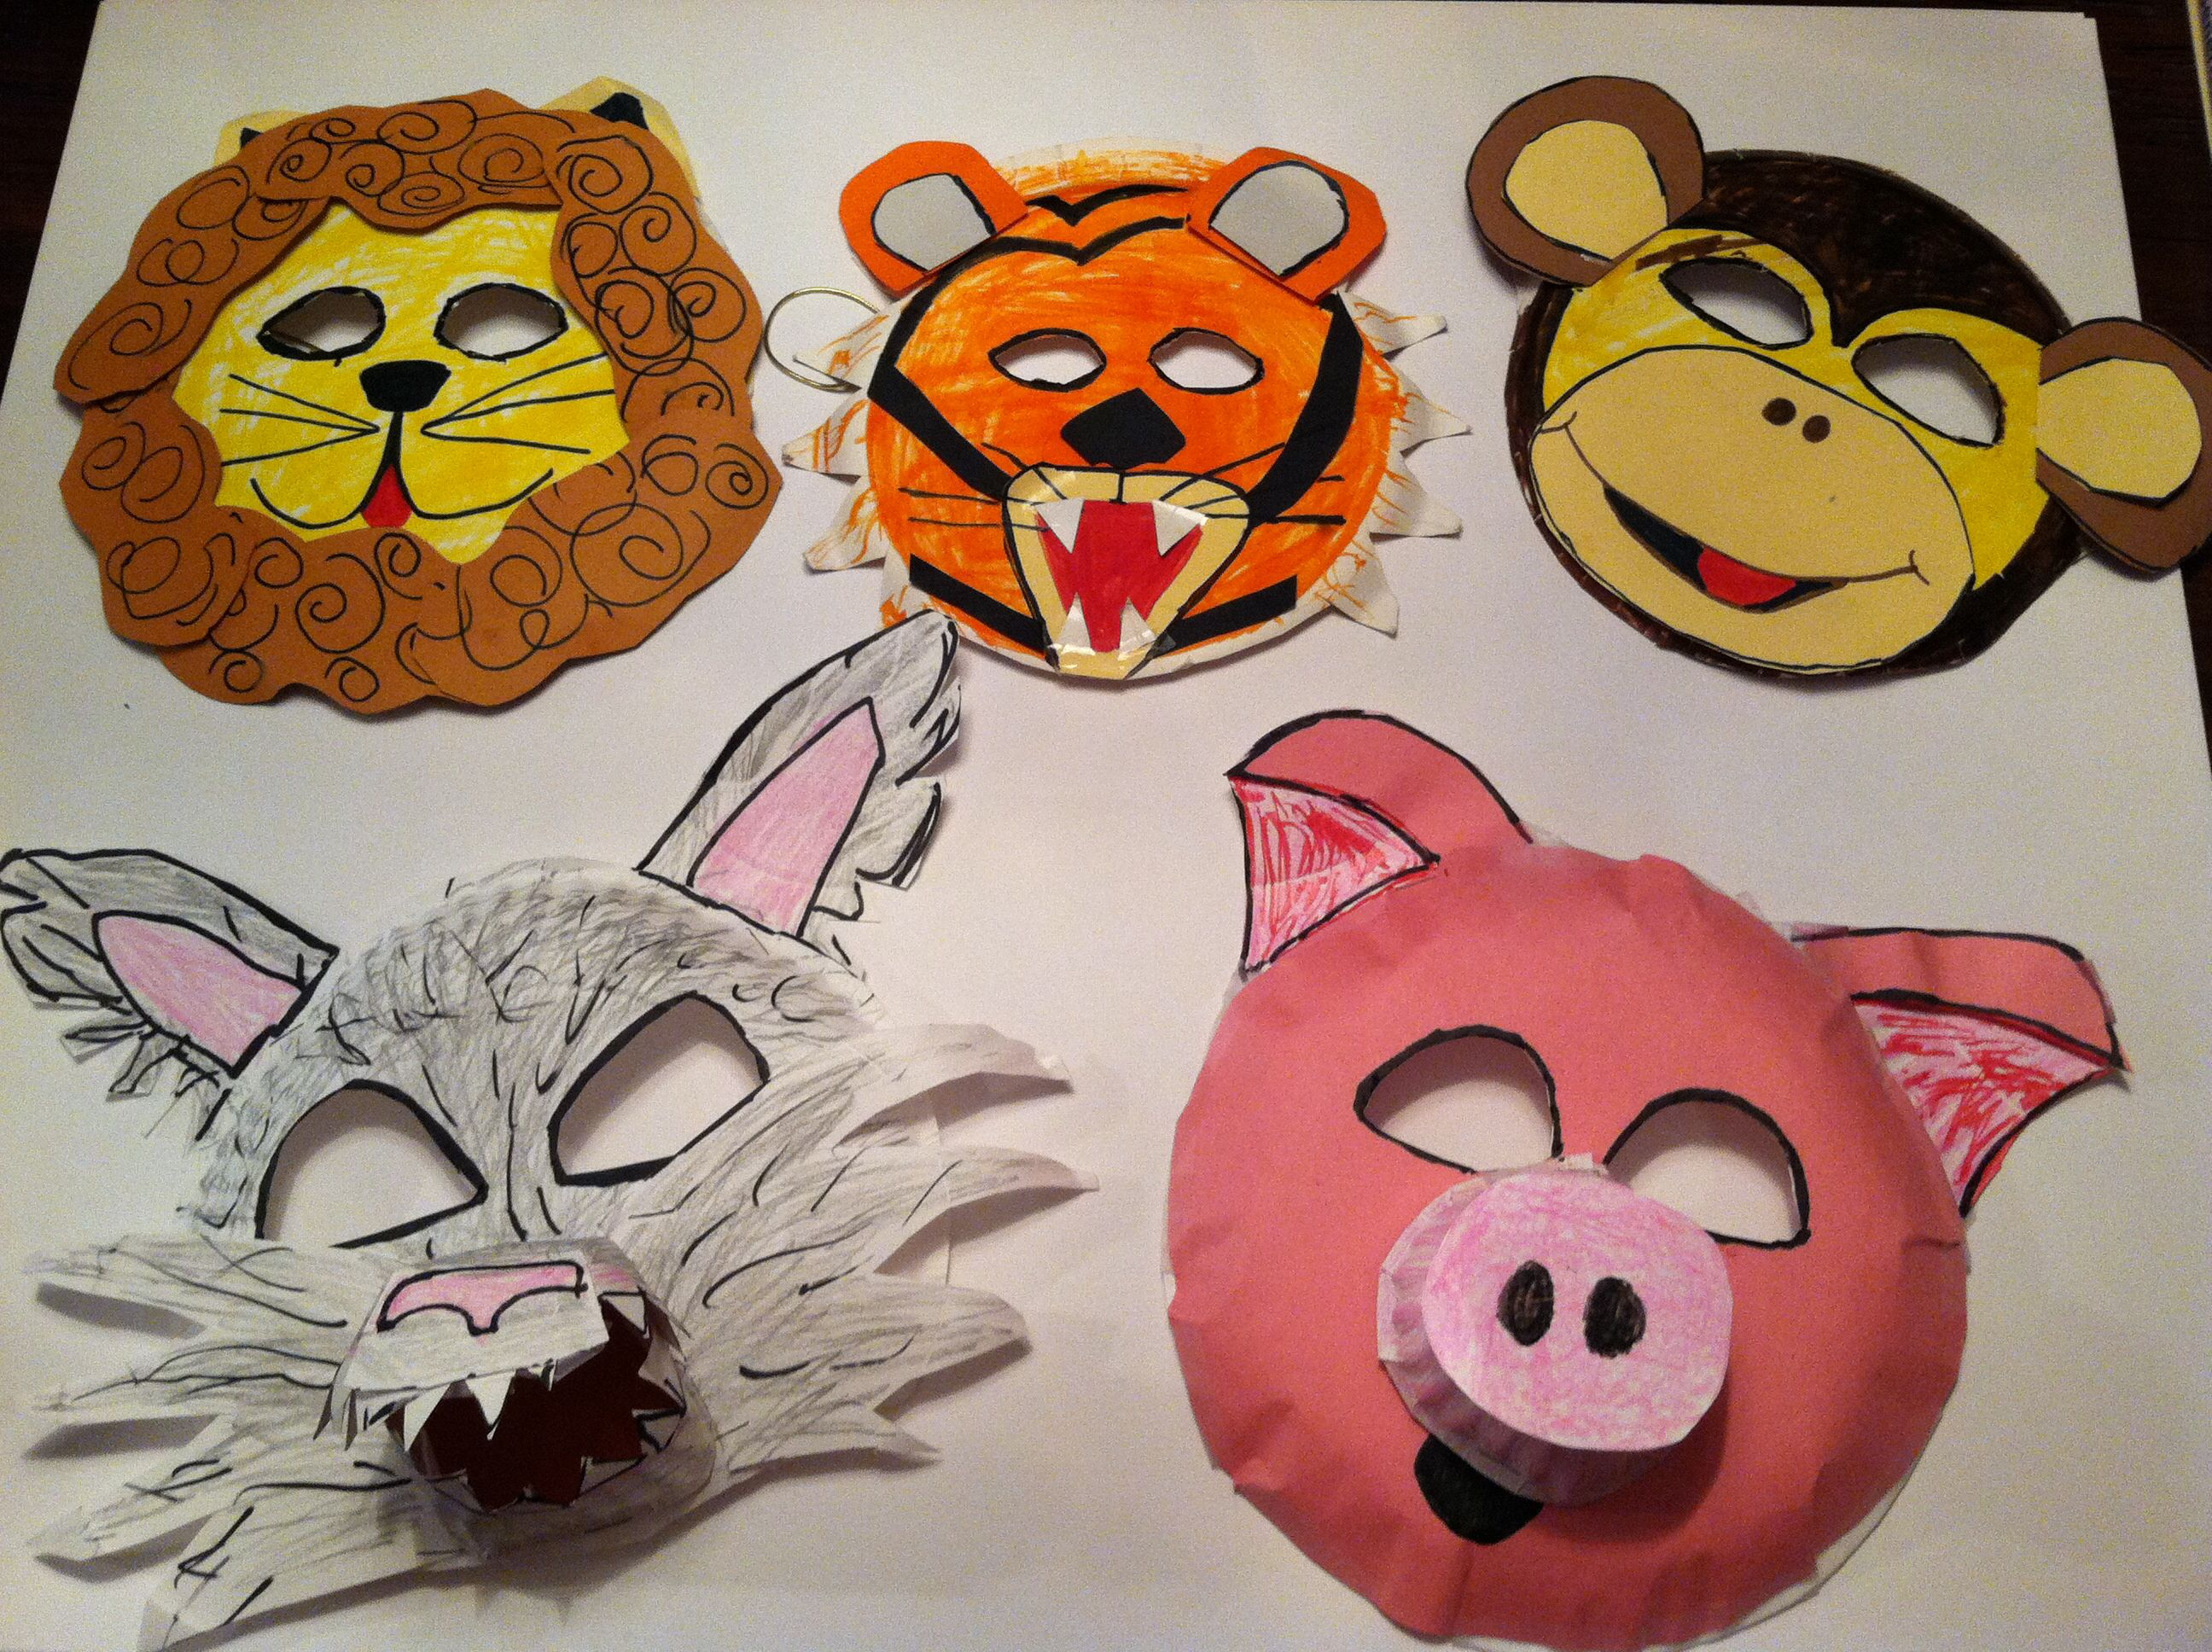 Paper plate animal crafts - Paper Plate Masks